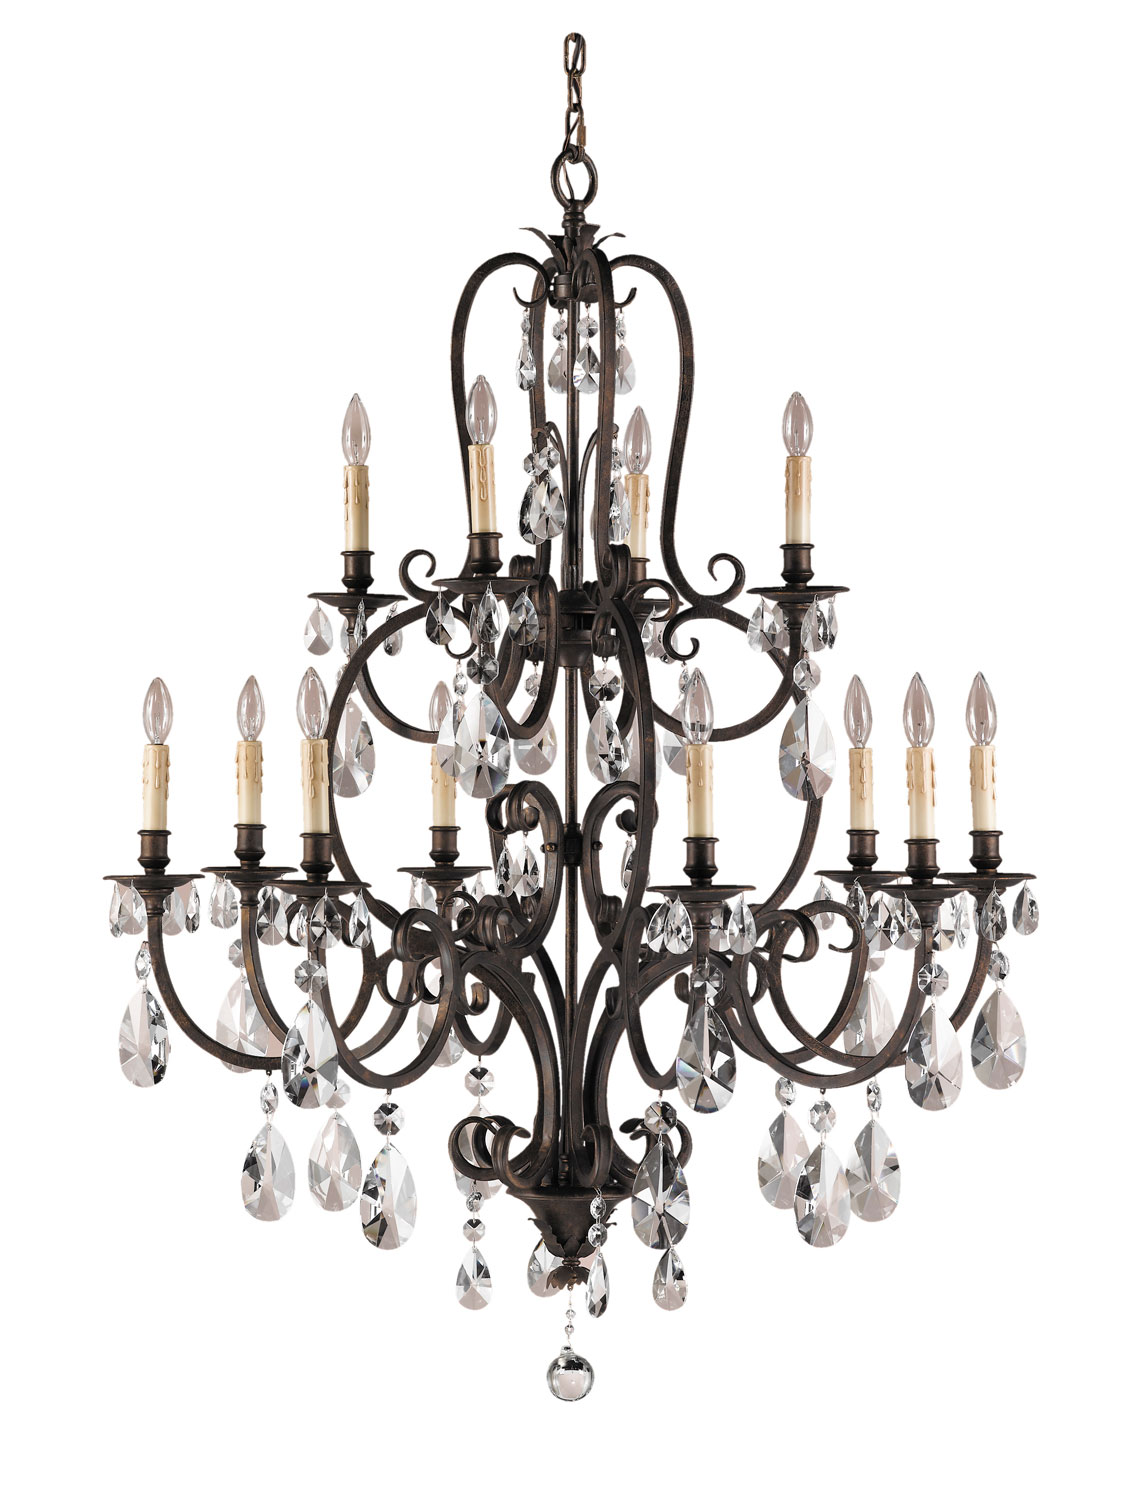 12 Light Chandelier from the Salon Maison collection by Feiss F222984ATS